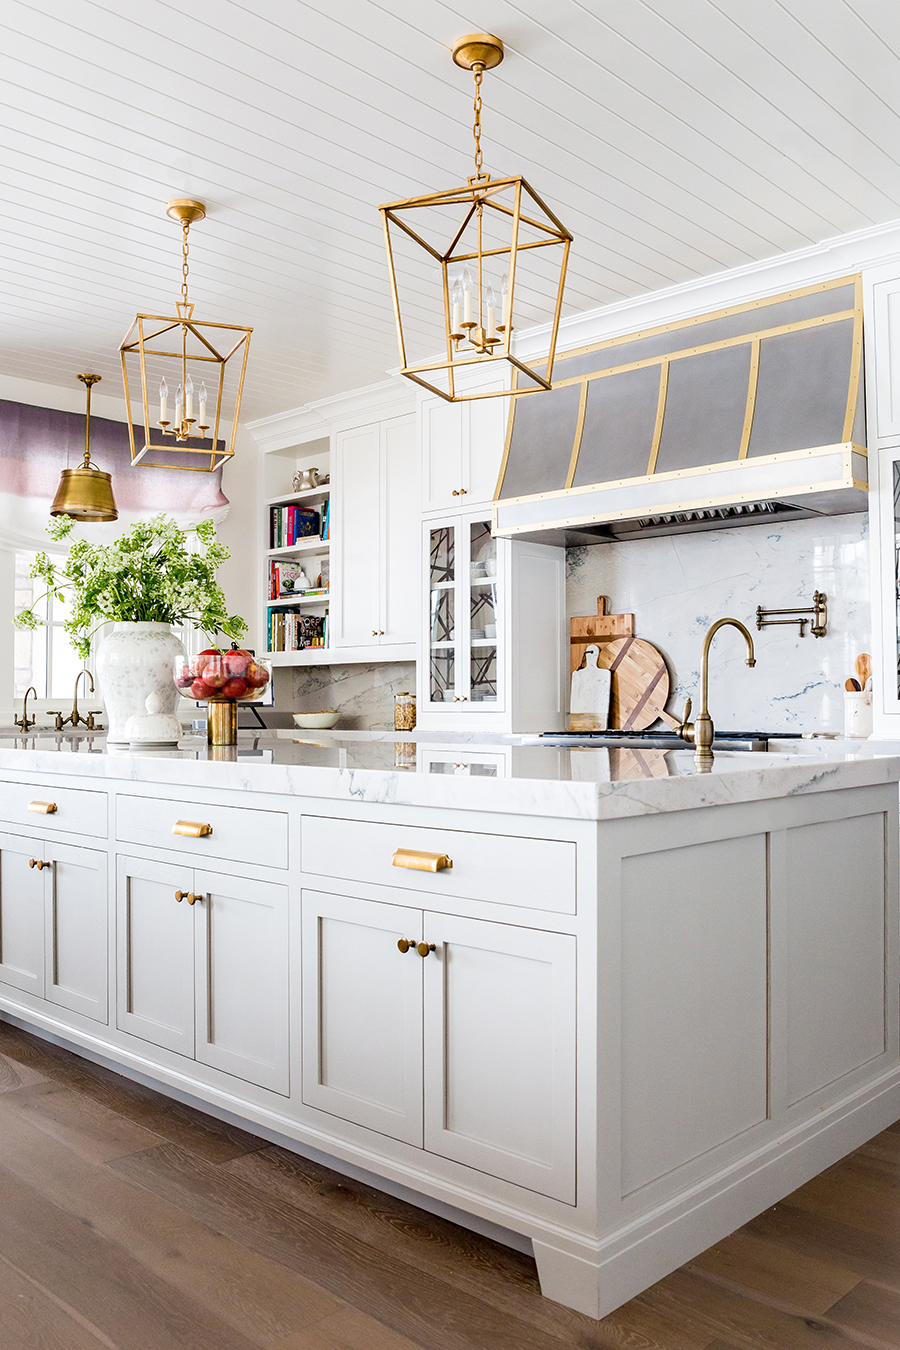 Blogger Ivory Lane Kitchen Cabinets Gold Hardware Home Design